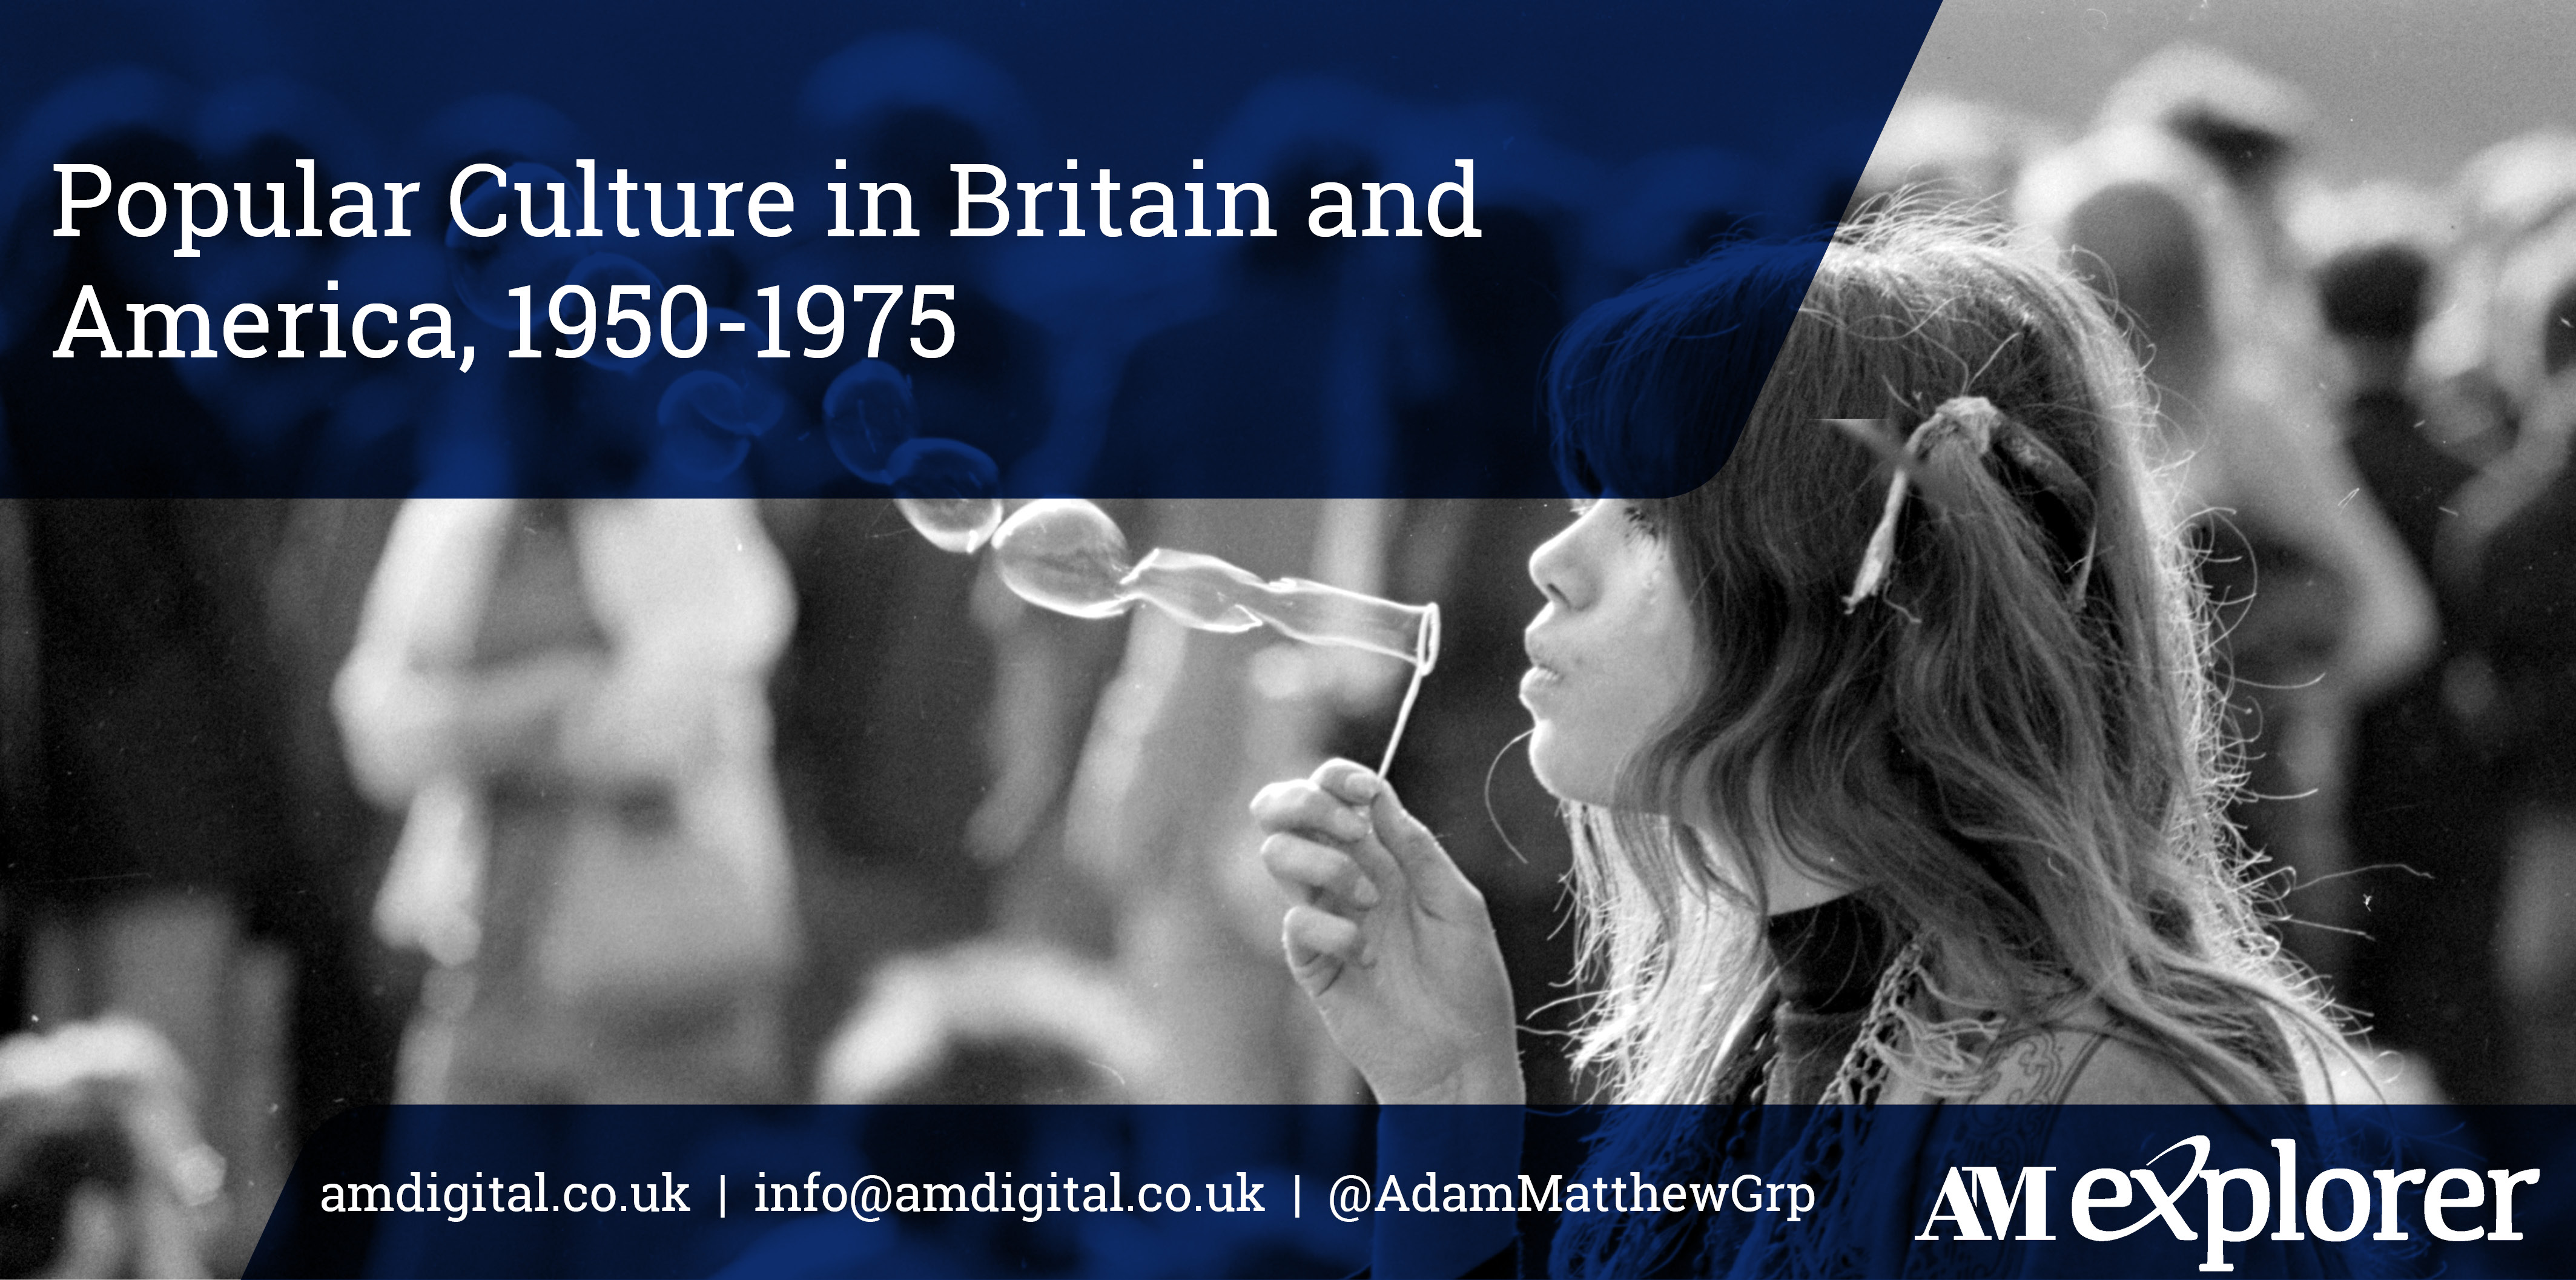 Image from Popular Culture in Britain and America, 1950 - 1975